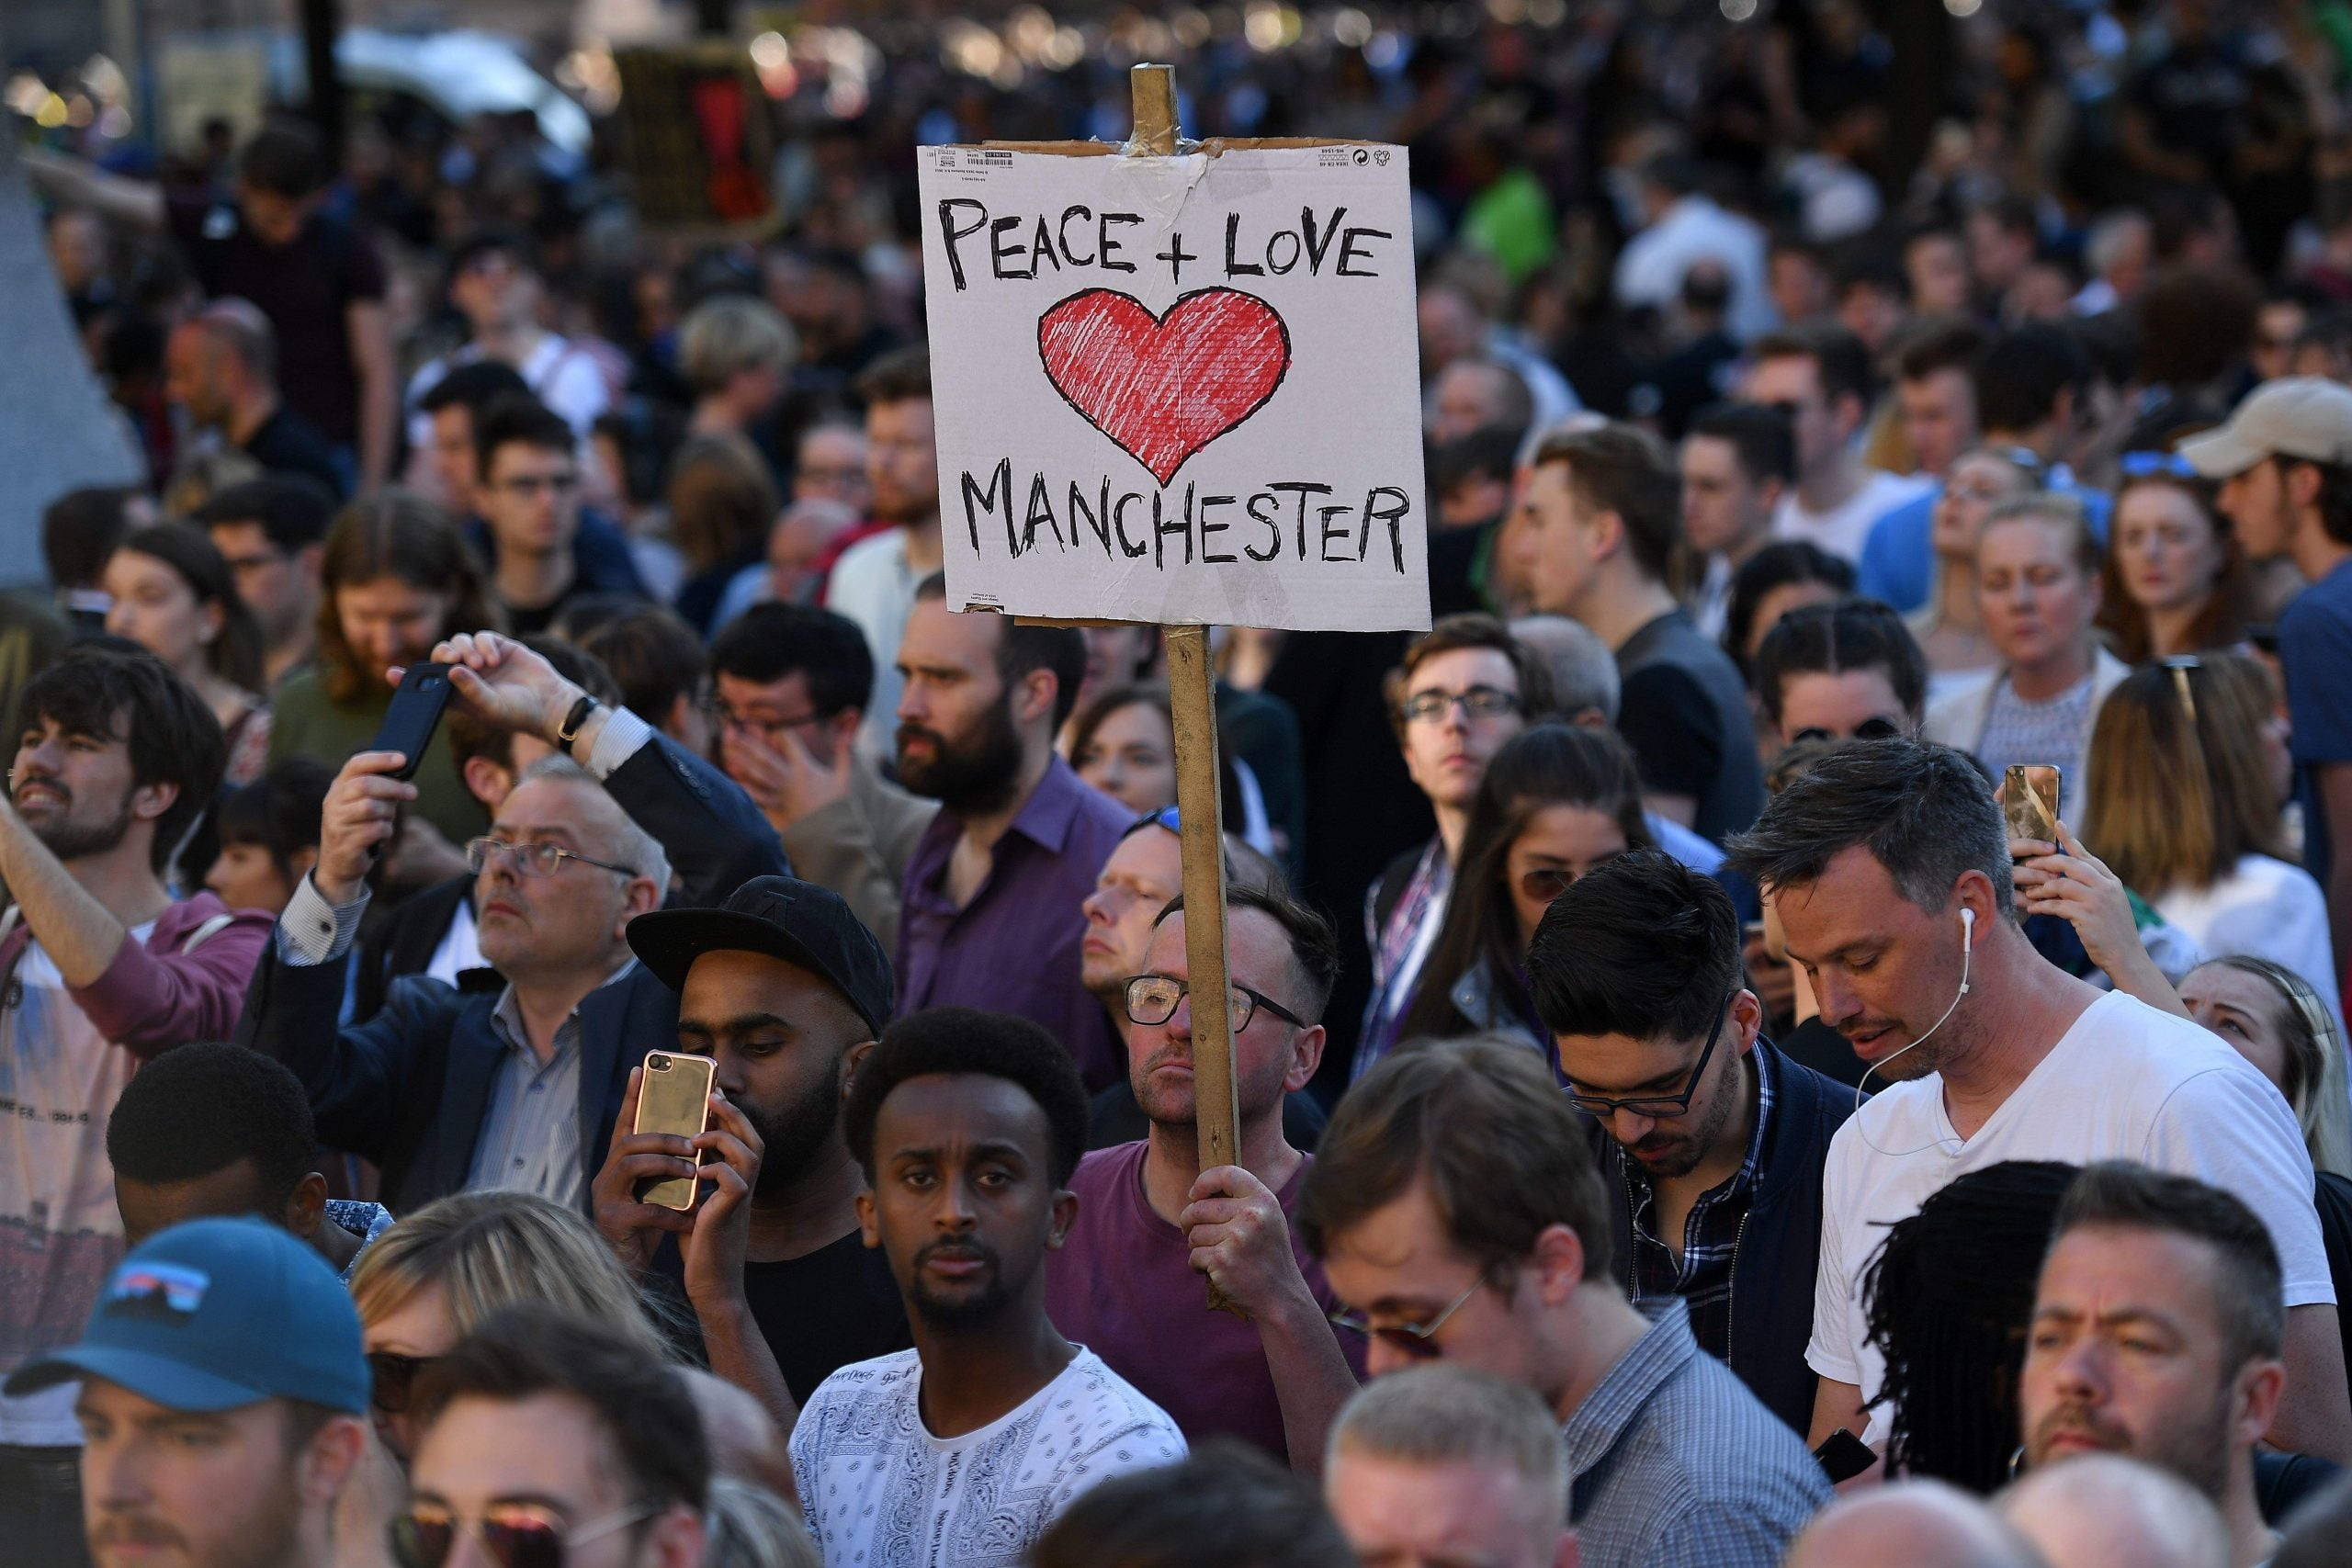 Expressing sympathy for terror's victims may seem banal, but it's better than the alternative